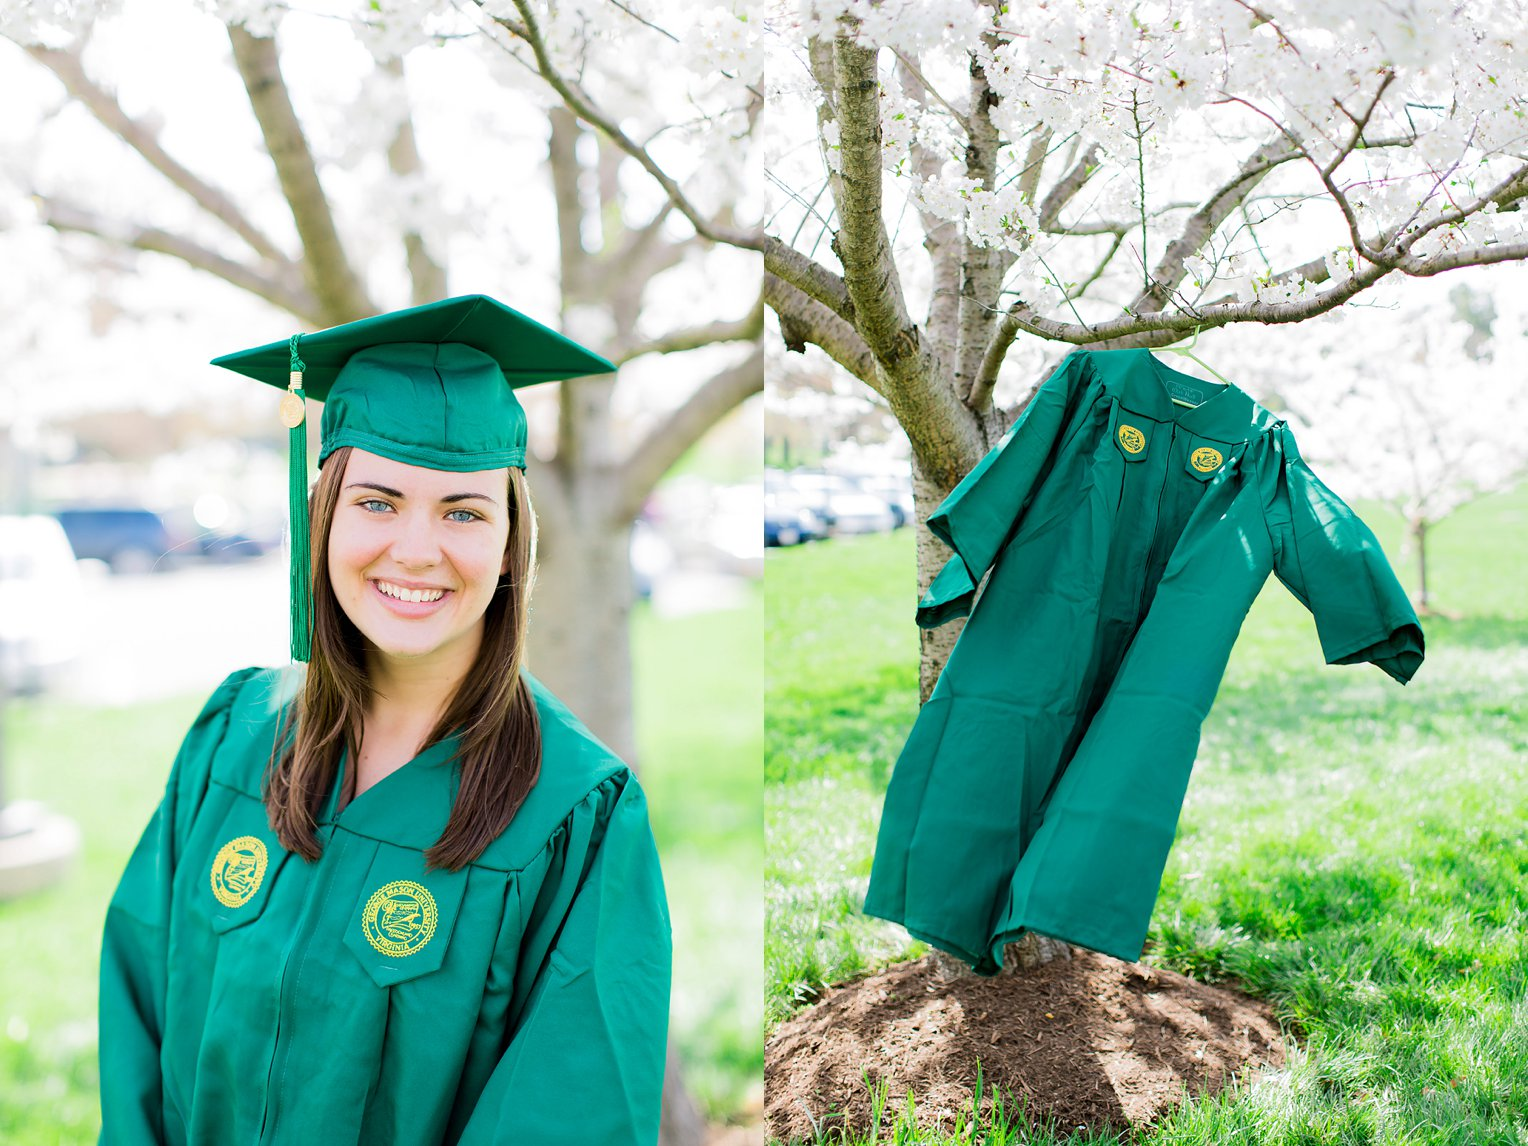 George Mason Senior Portraits